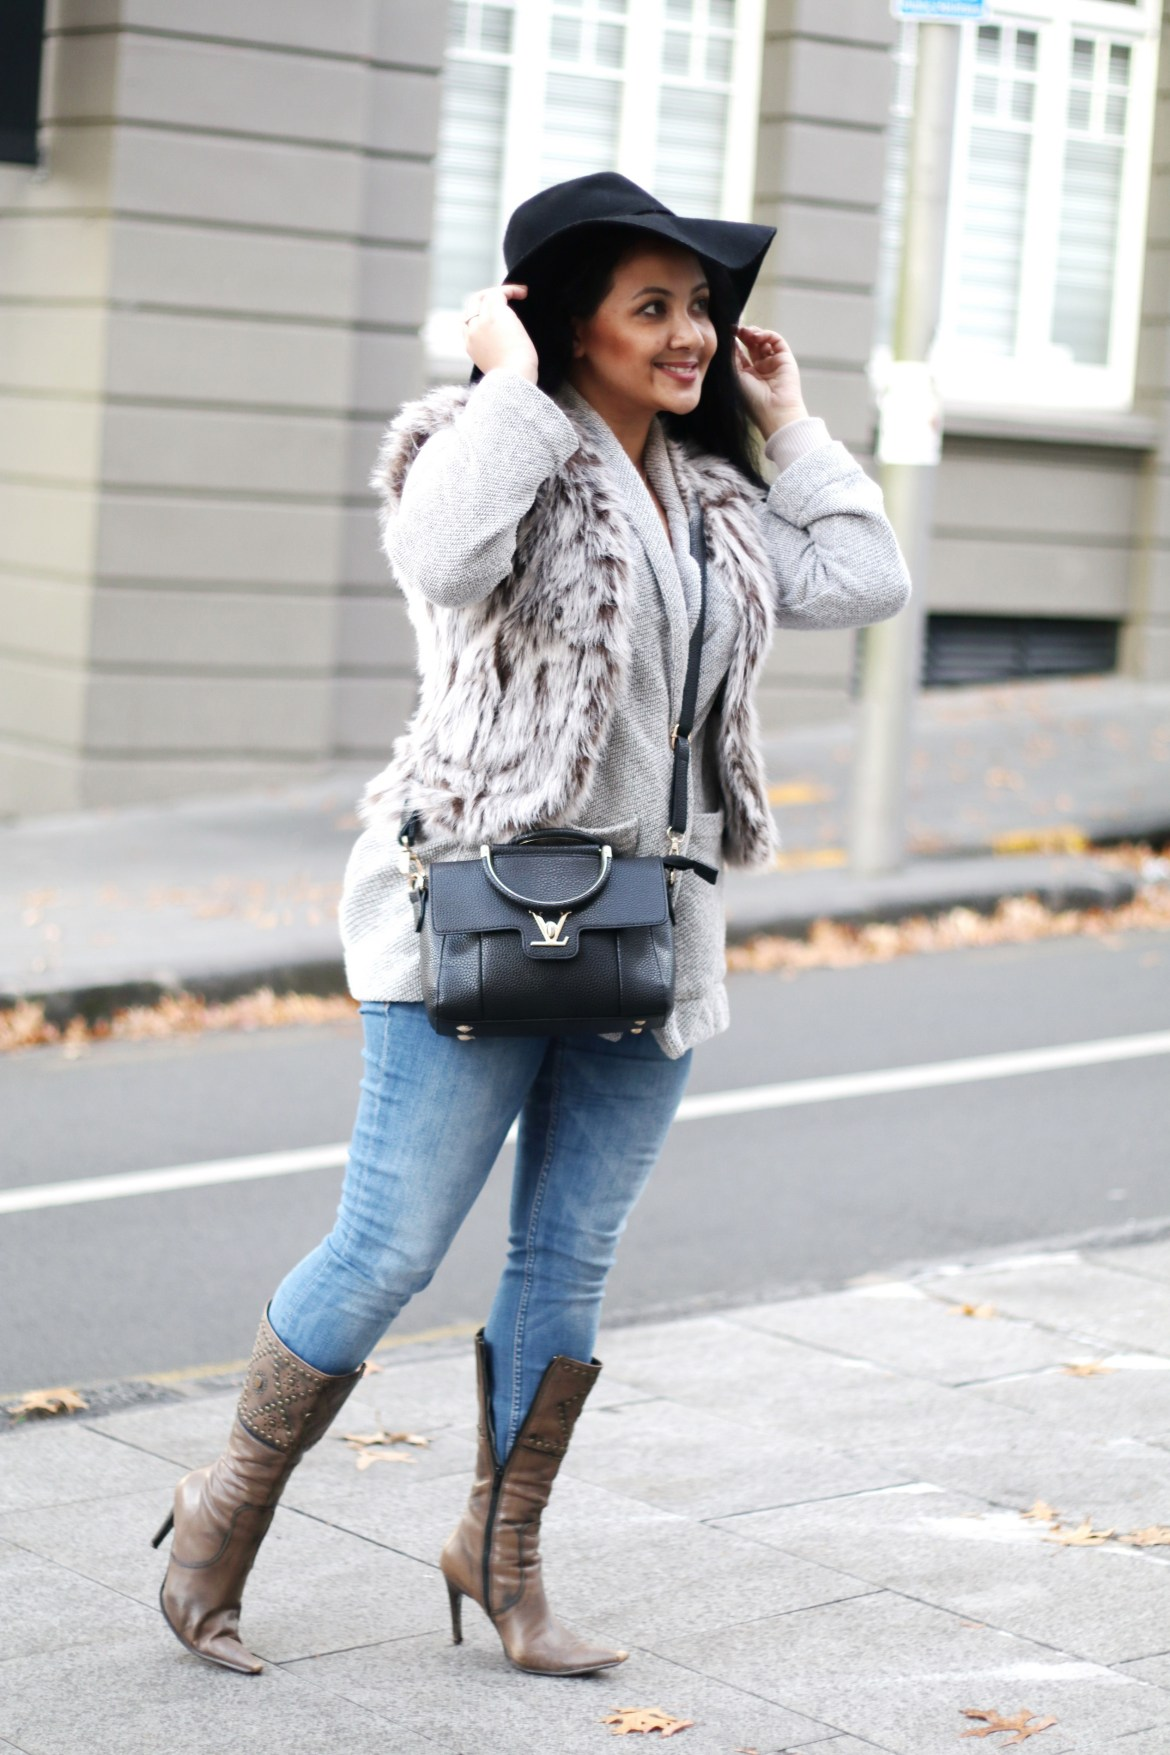 Paris Chic Style How To Wear A Faux Fur Vest Parisian Chic Style Everyday Fashion Streetstyle 6_resize